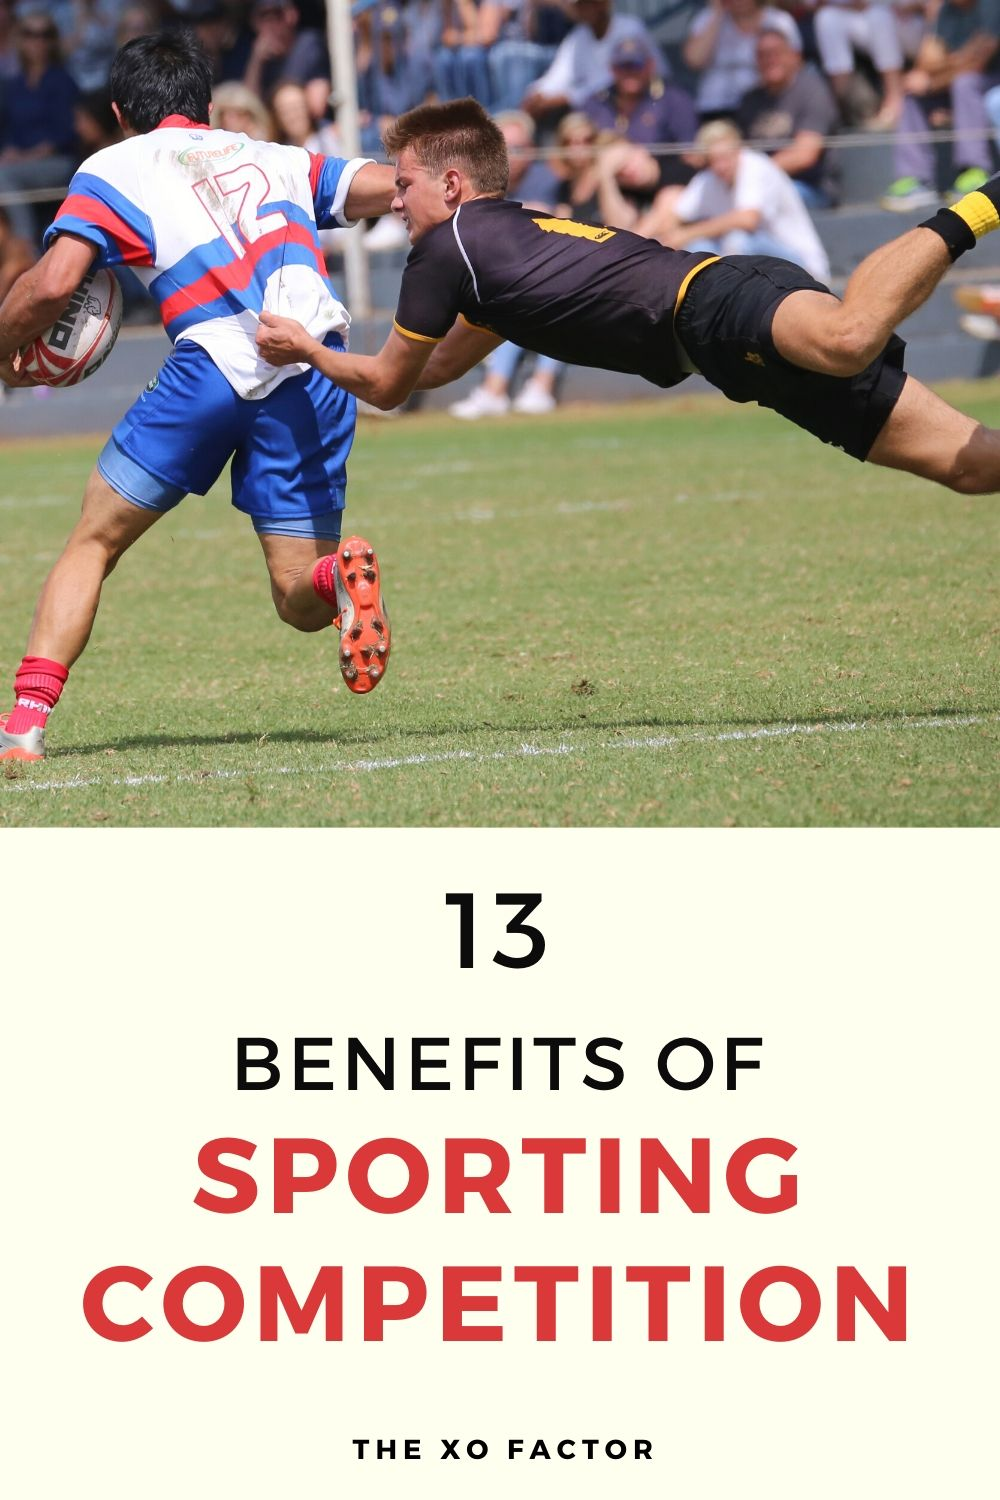 13 benefits of sporting comprtition